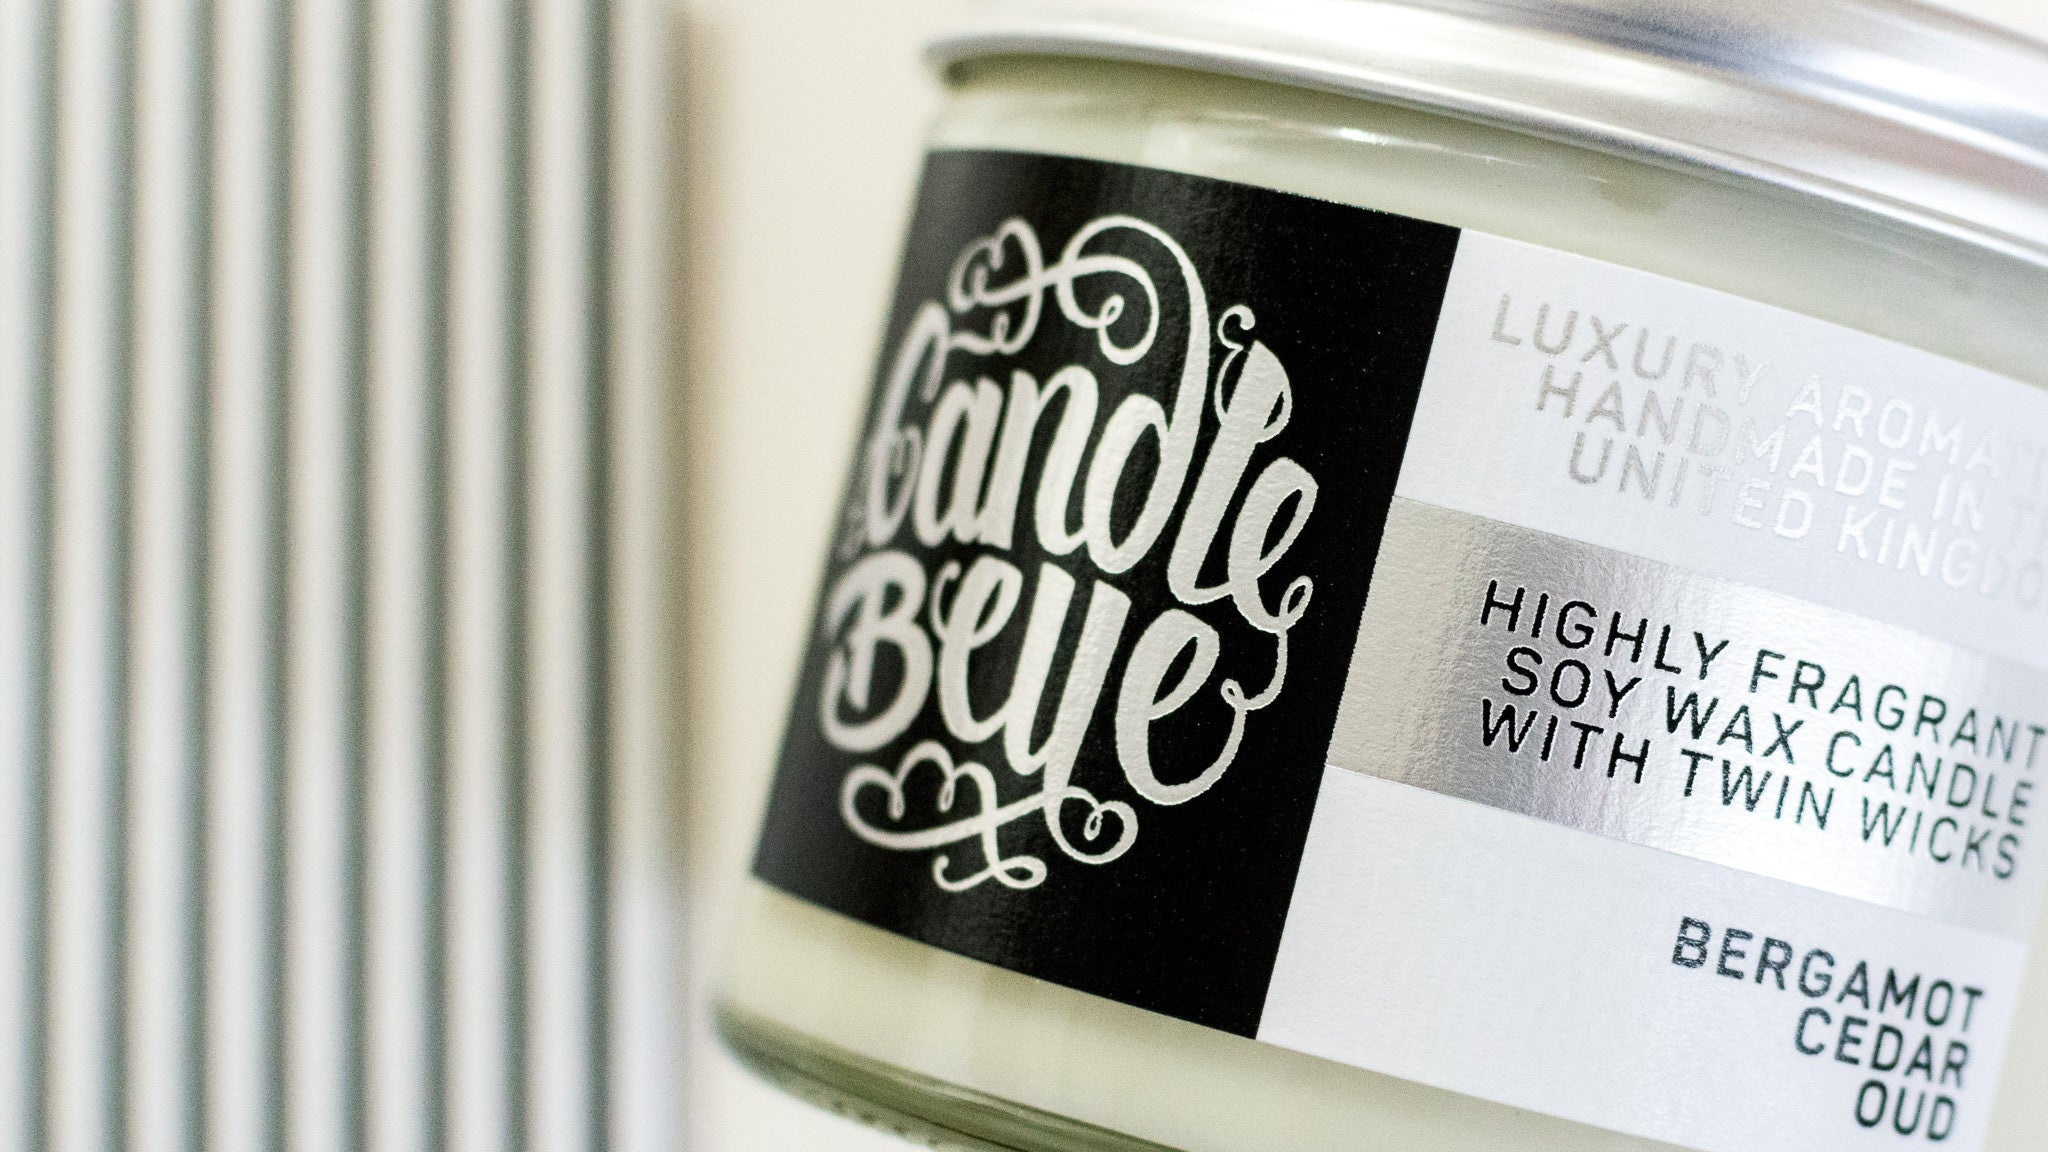 Candle Belle Soy Wax Twin Wick Candles